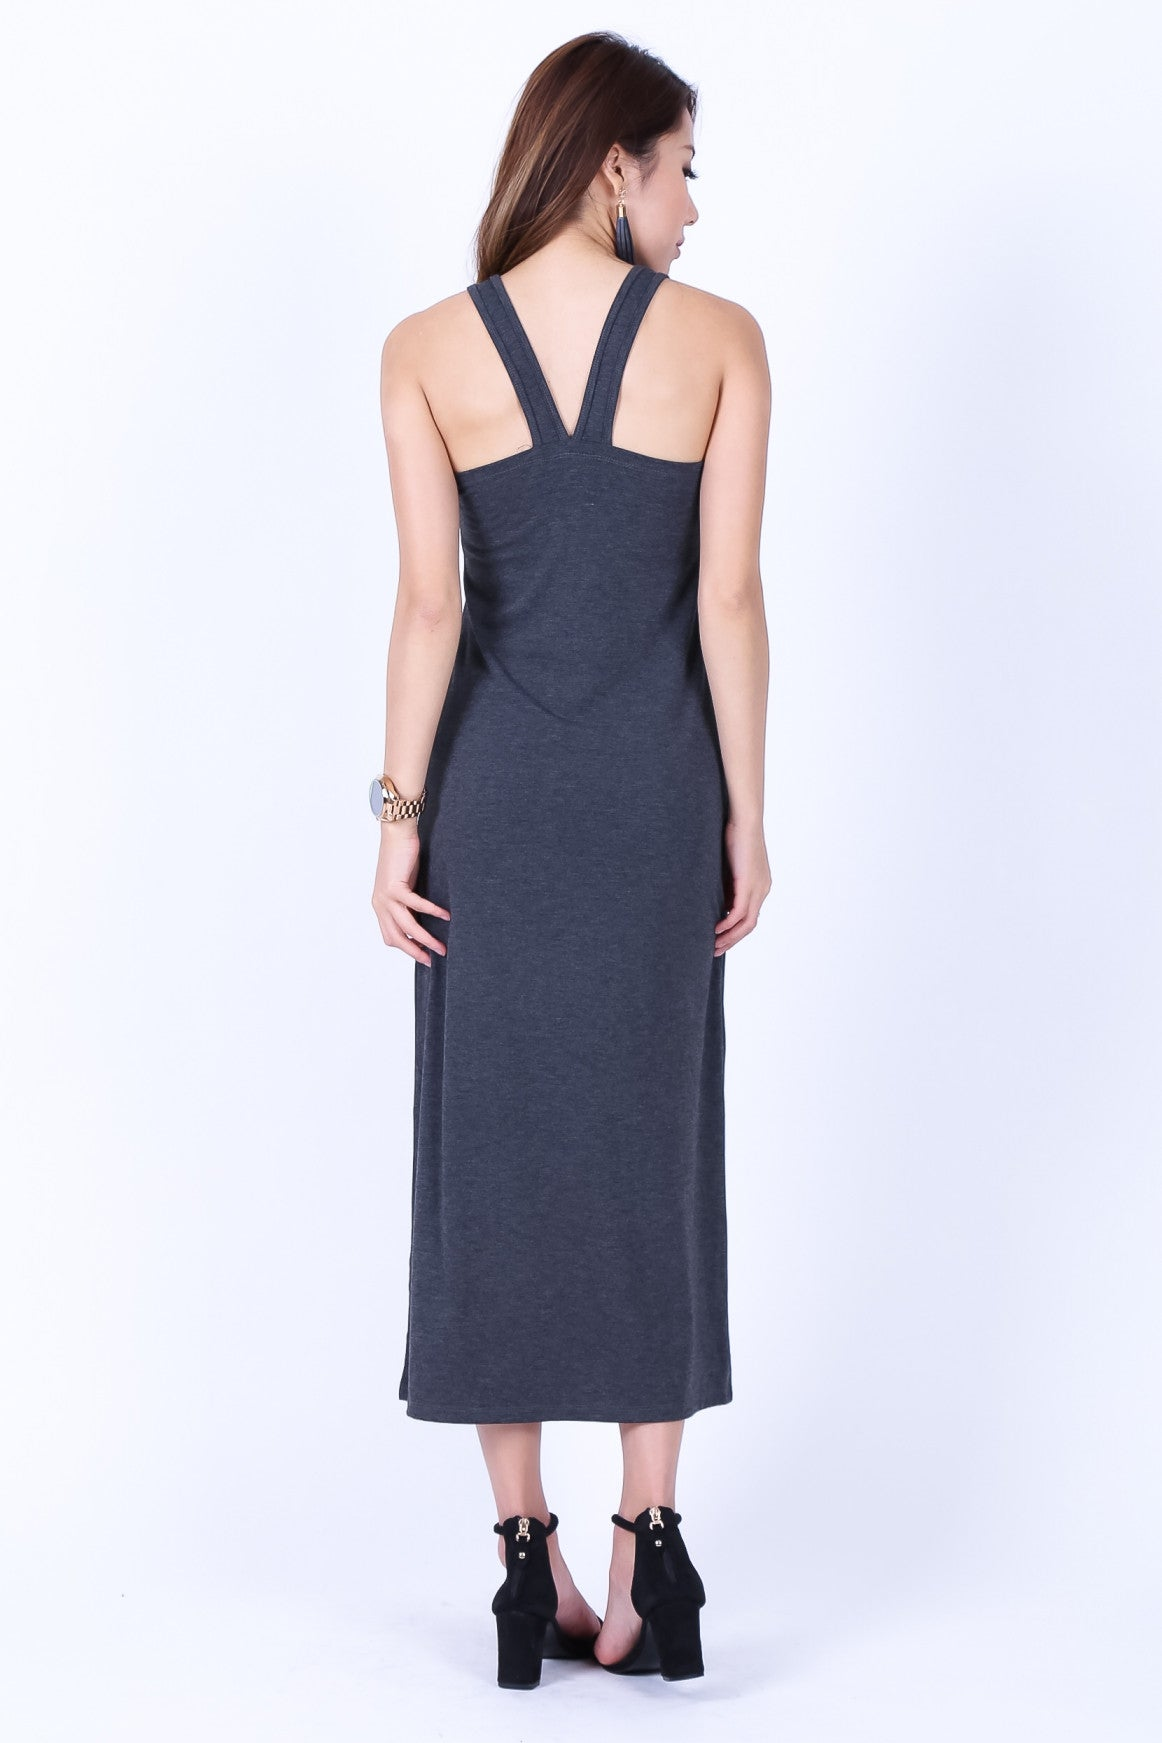 BRADSHAW V BACK MAXI IN DARK GREY - TOPAZETTE